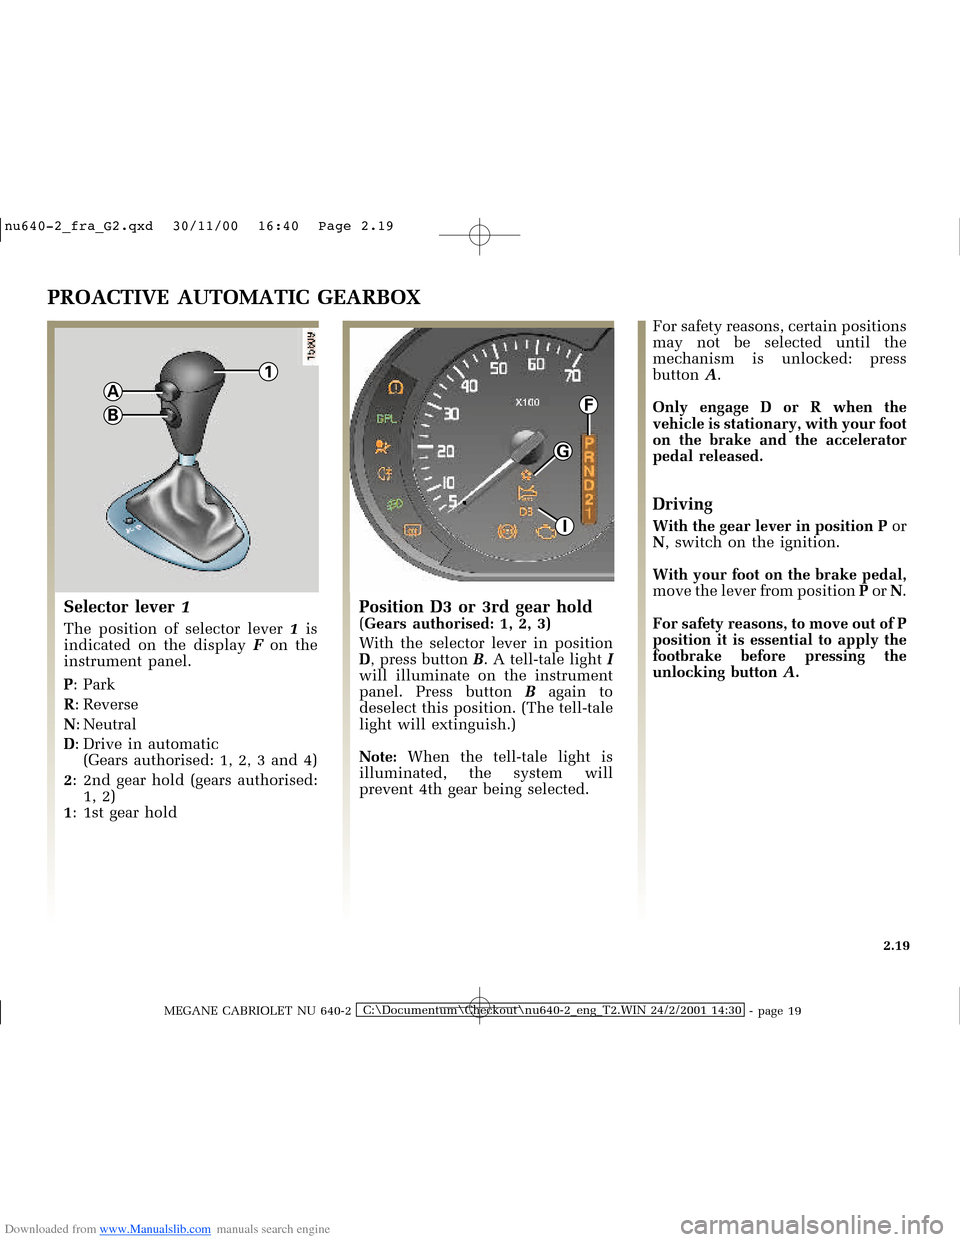 RENAULT MEGANE 2000 X64 / 1.G Owners Manual, Page 78